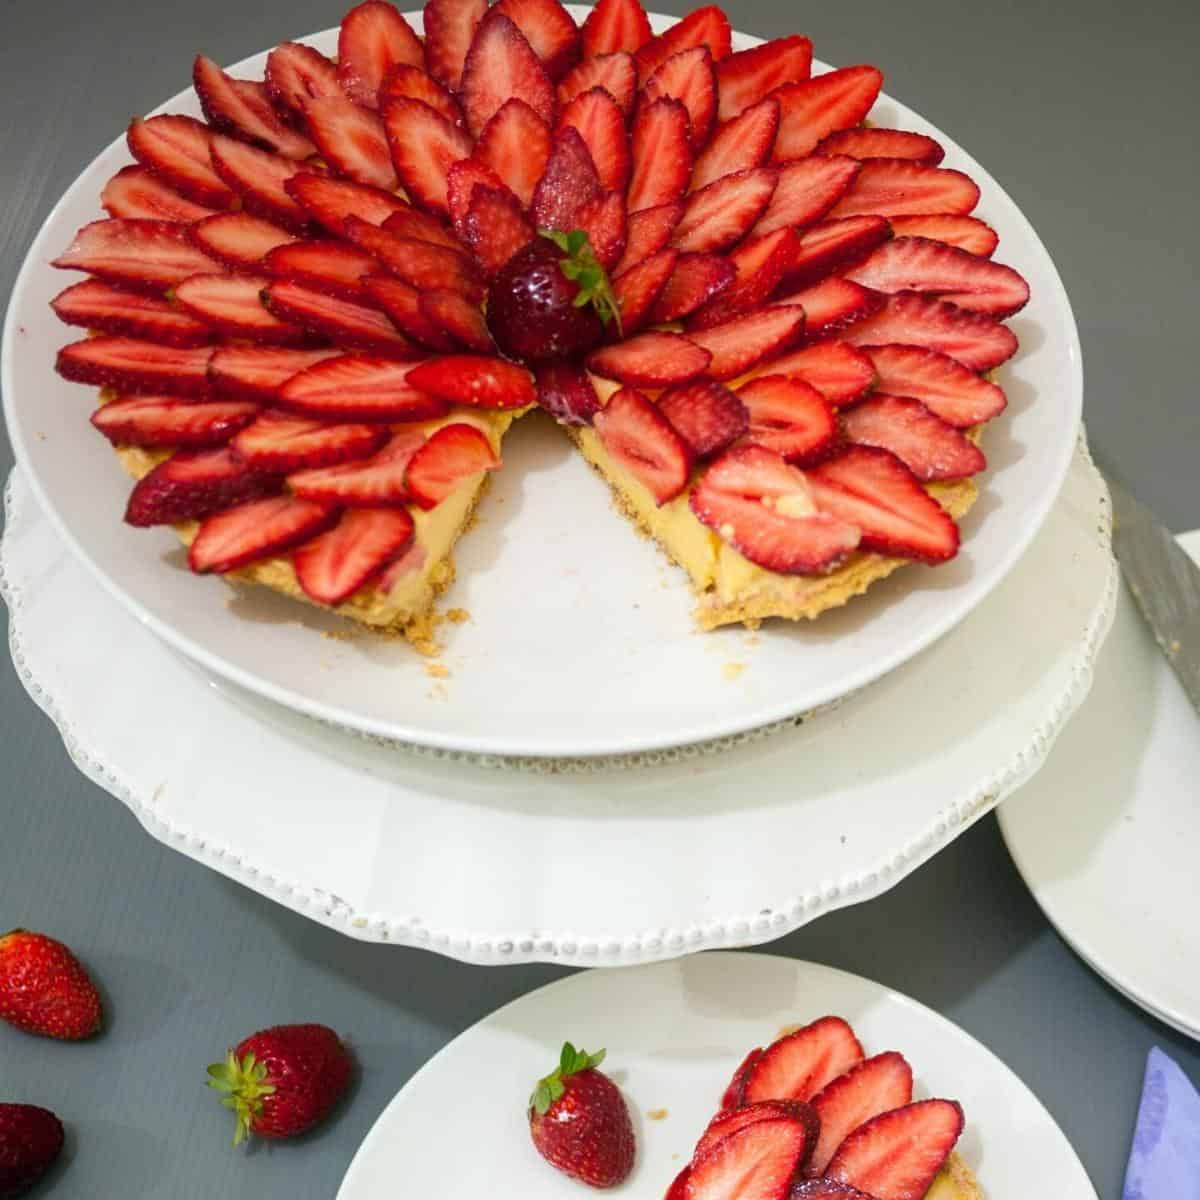 a cut slice of strawberry tart on a plate